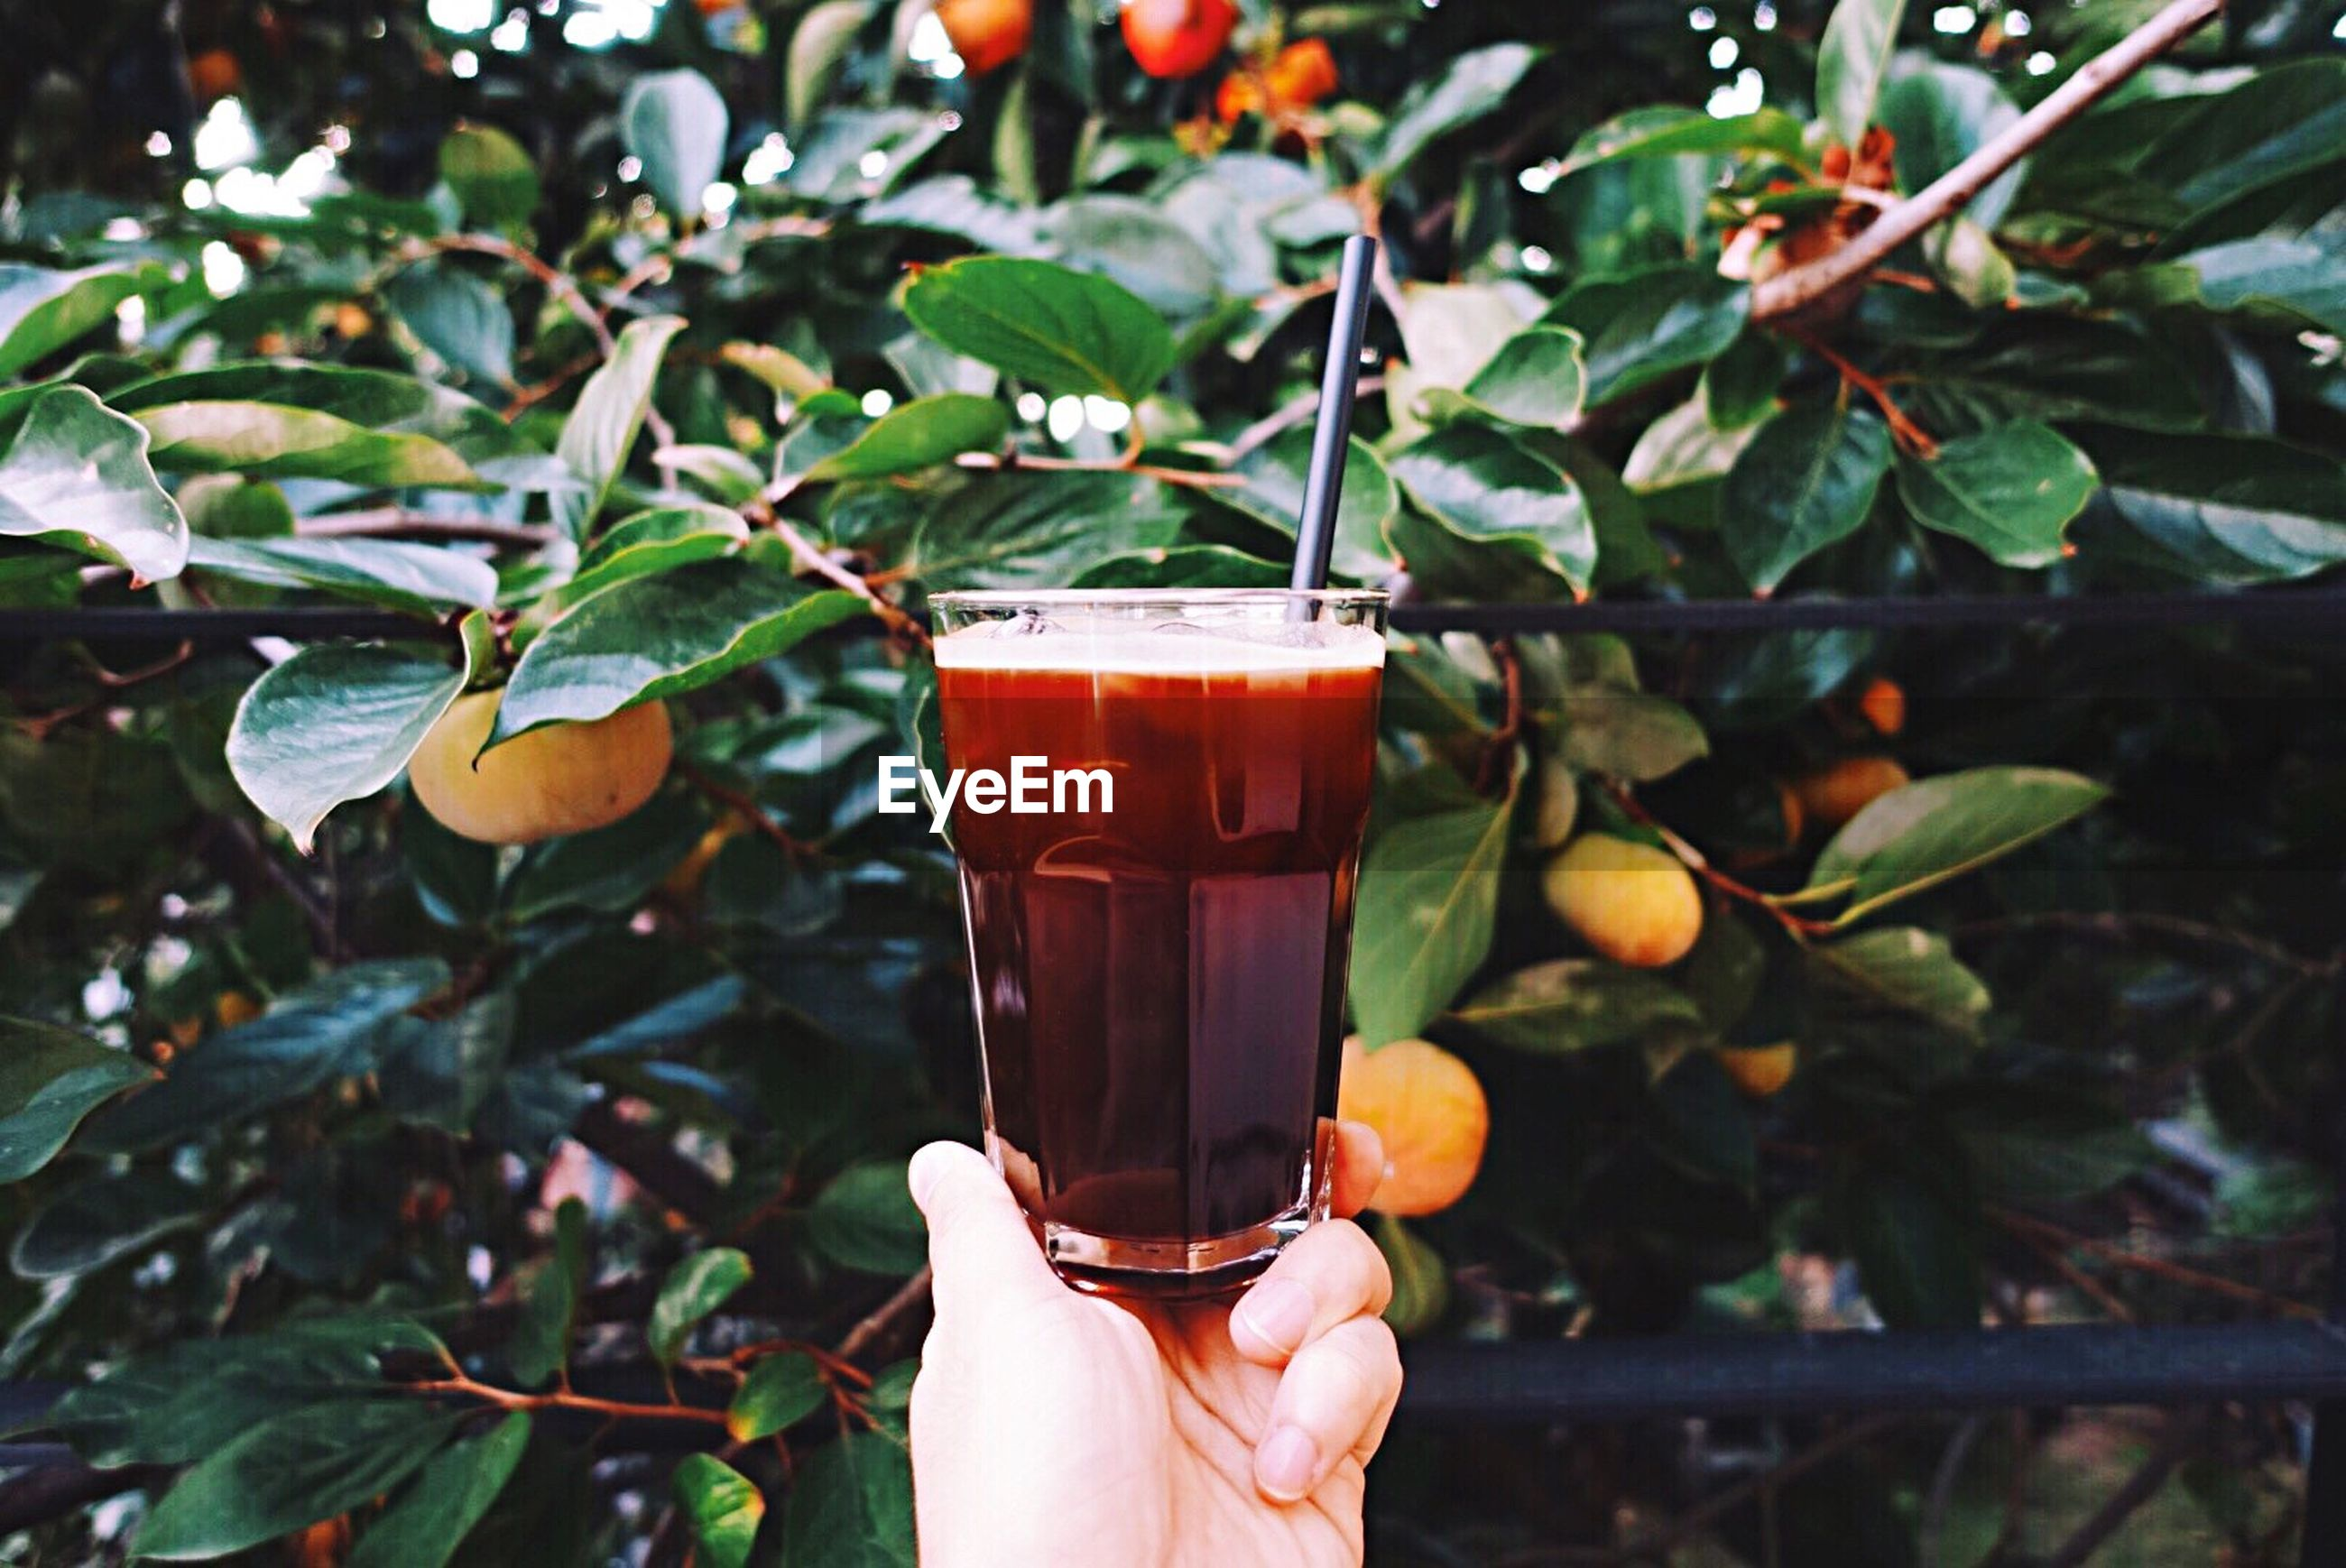 food and drink, drink, person, refreshment, freshness, holding, focus on foreground, close-up, cropped, part of, personal perspective, leaf, drinking straw, drinking glass, healthy eating, food, unrecognizable person